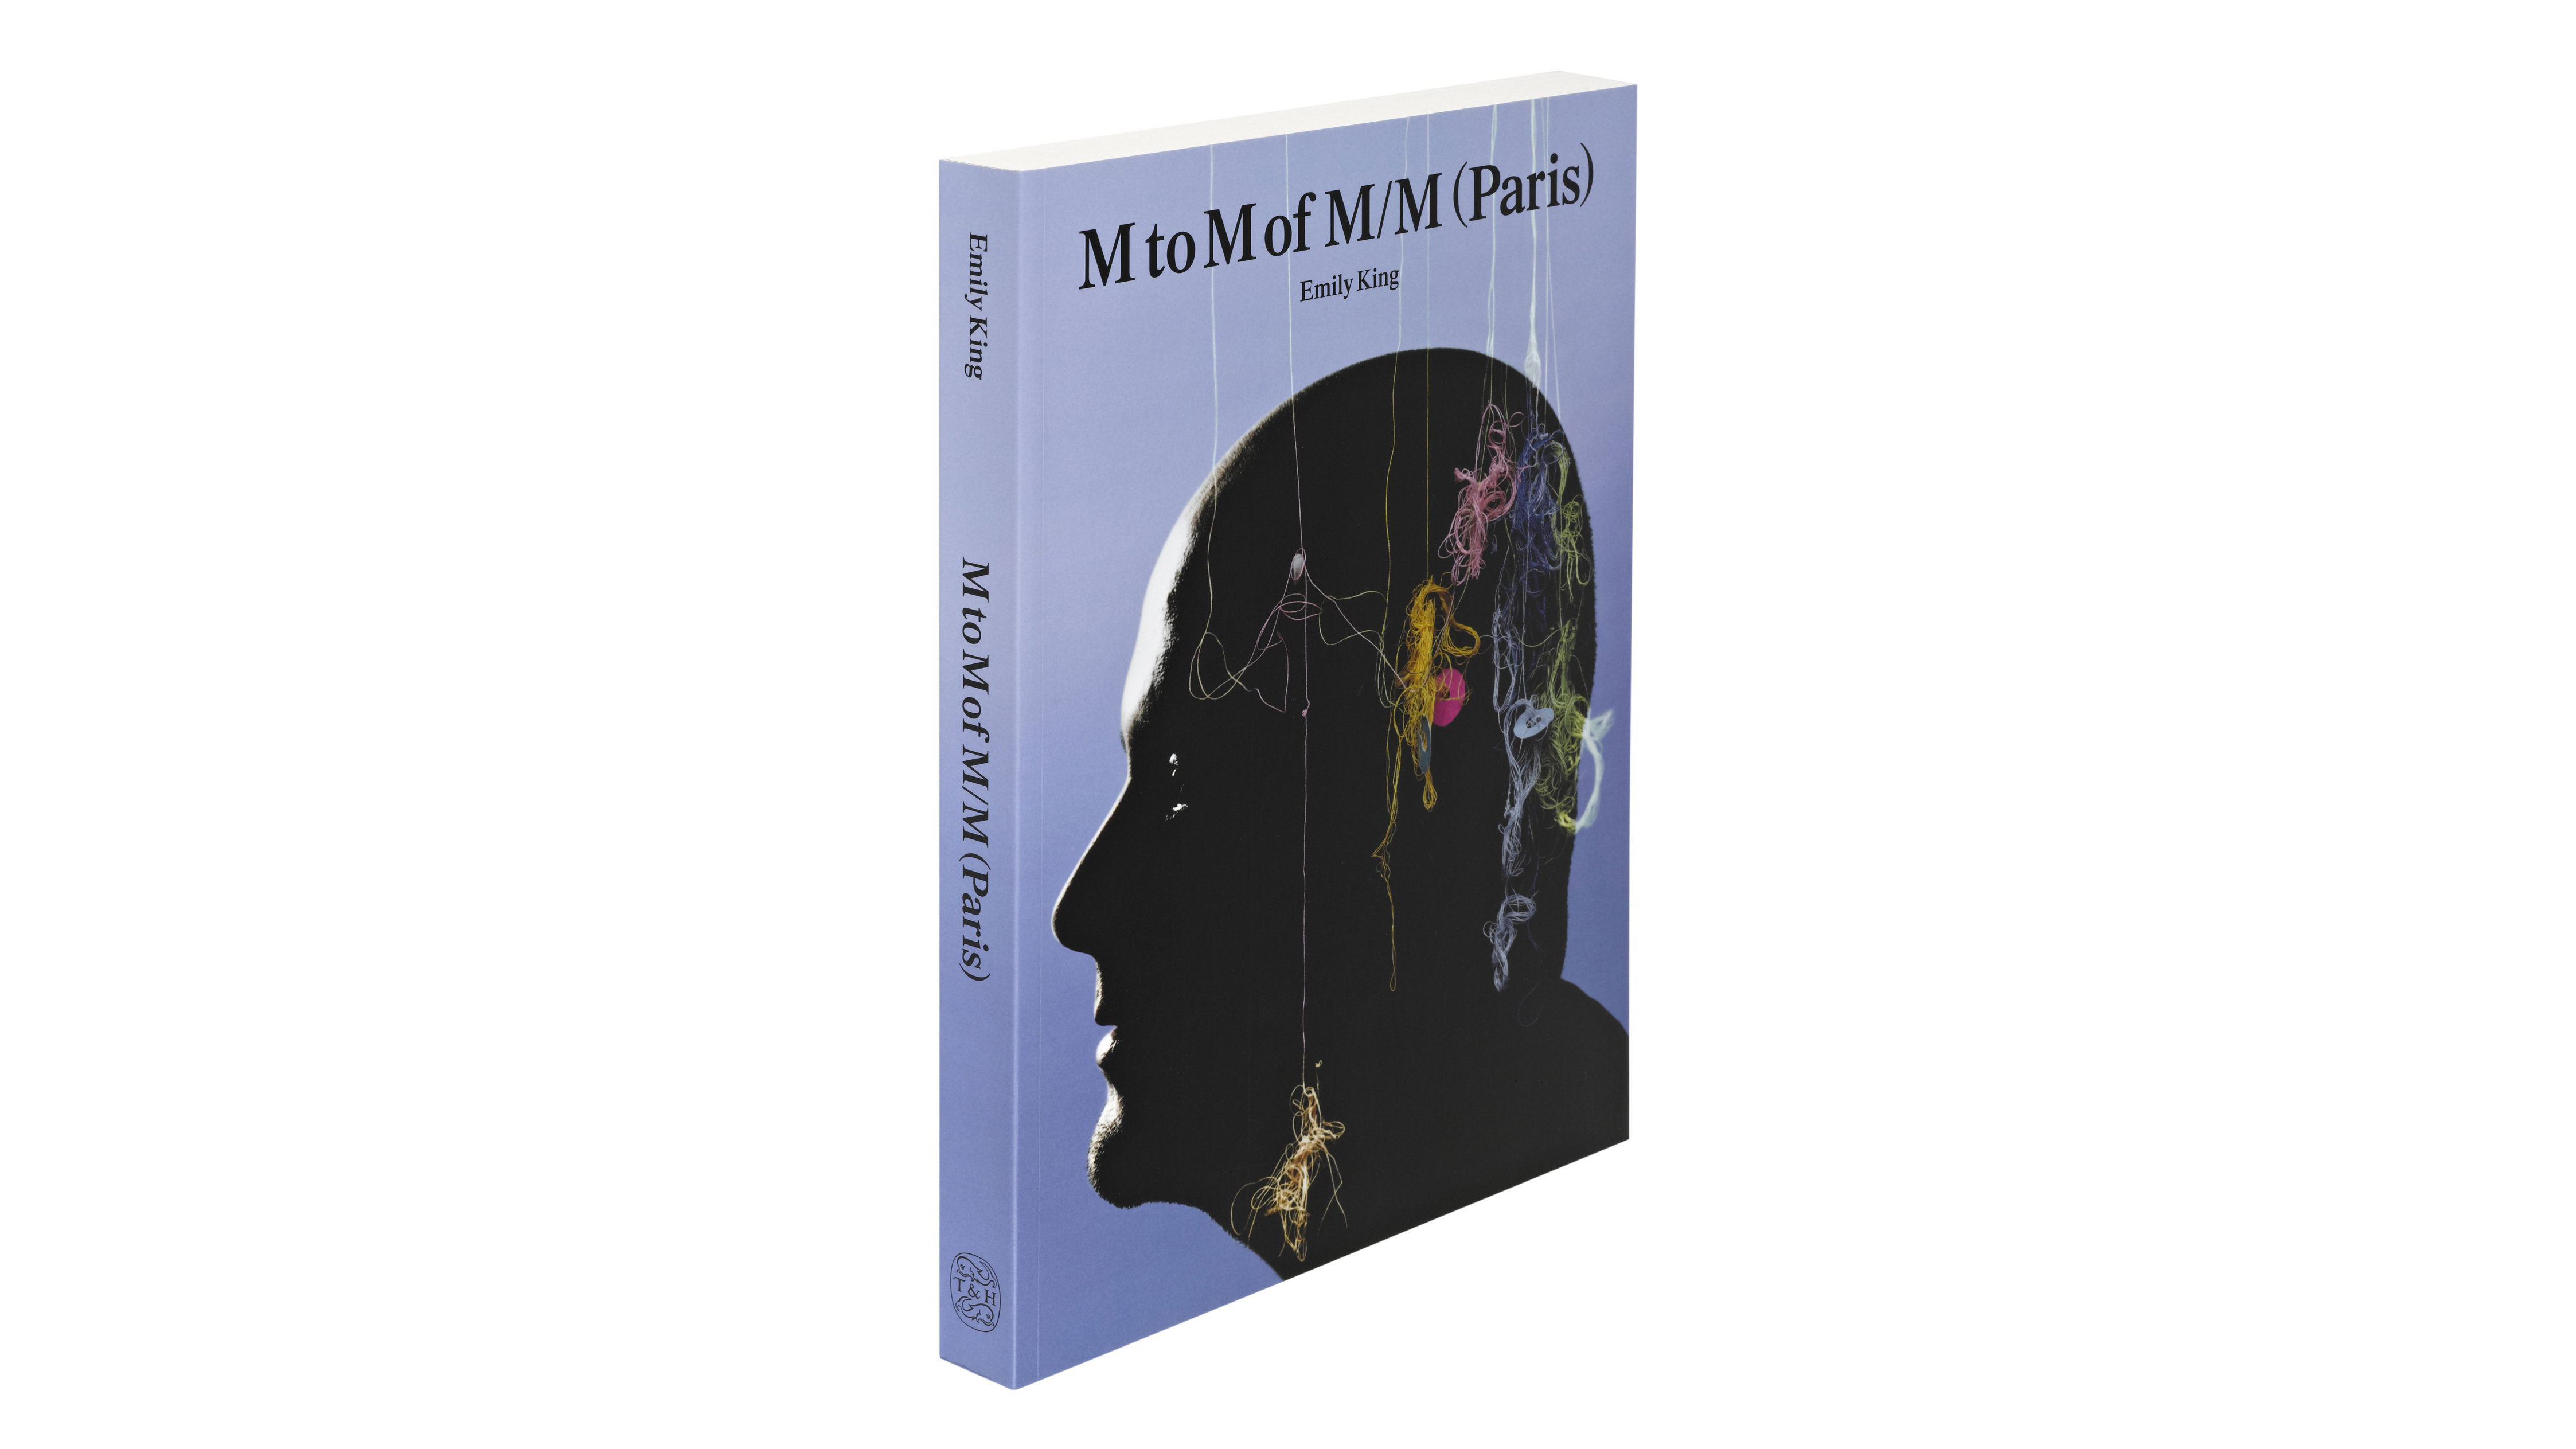 M to M of M/M (Paris) by Emily King